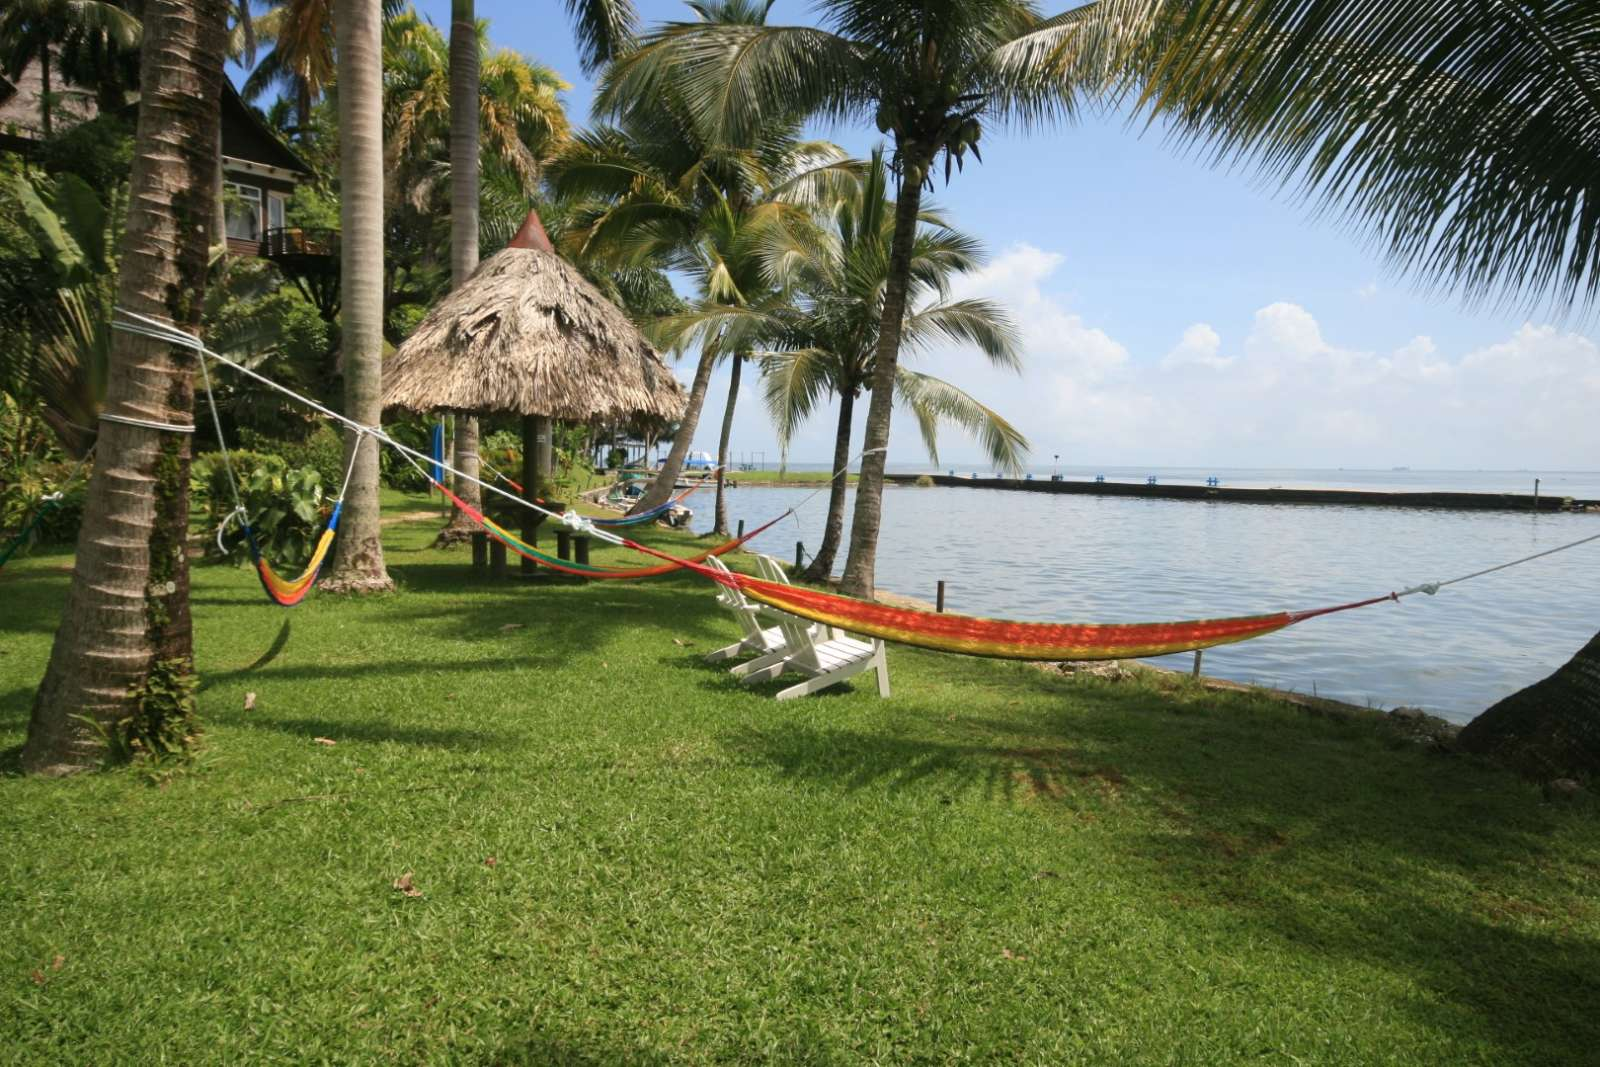 Garden hammocks at Villa Caribe in Livingston, Guatemala